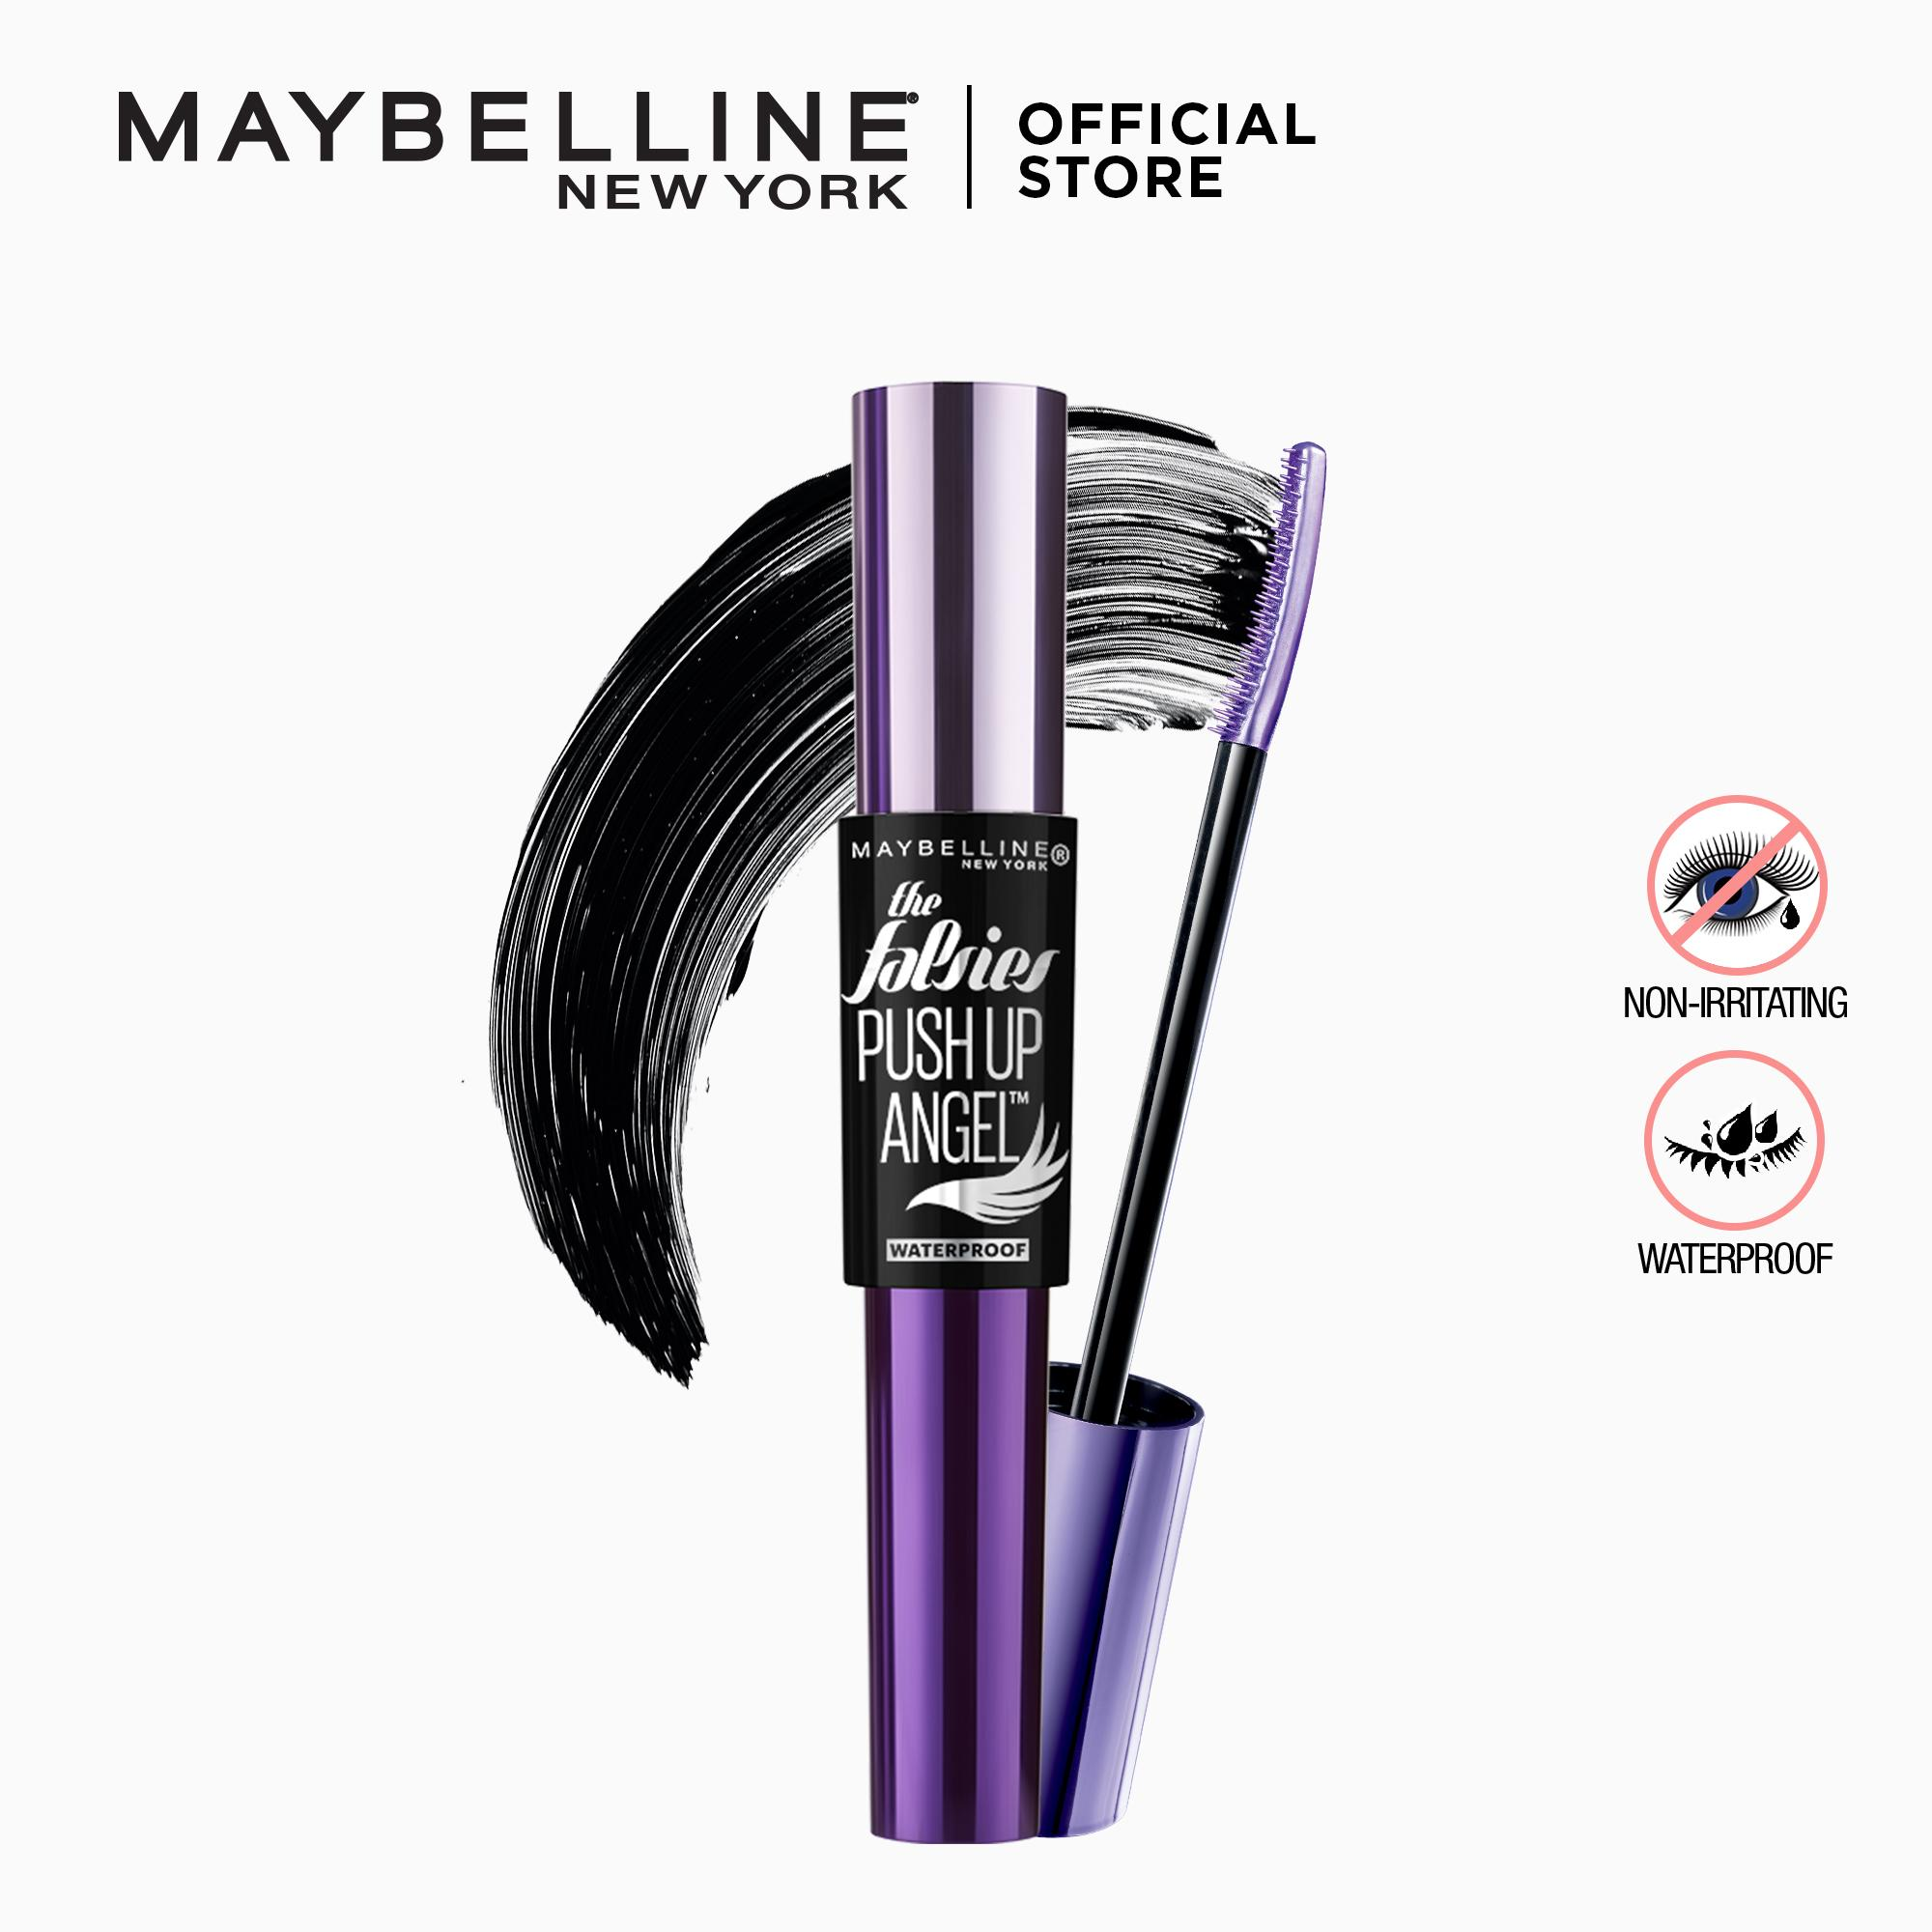 Maybelline Philippines Mascara For Sale Prices Barbie The Magnum Volum Express Waterproof Falsies Push Up Angel 97ml Very Black